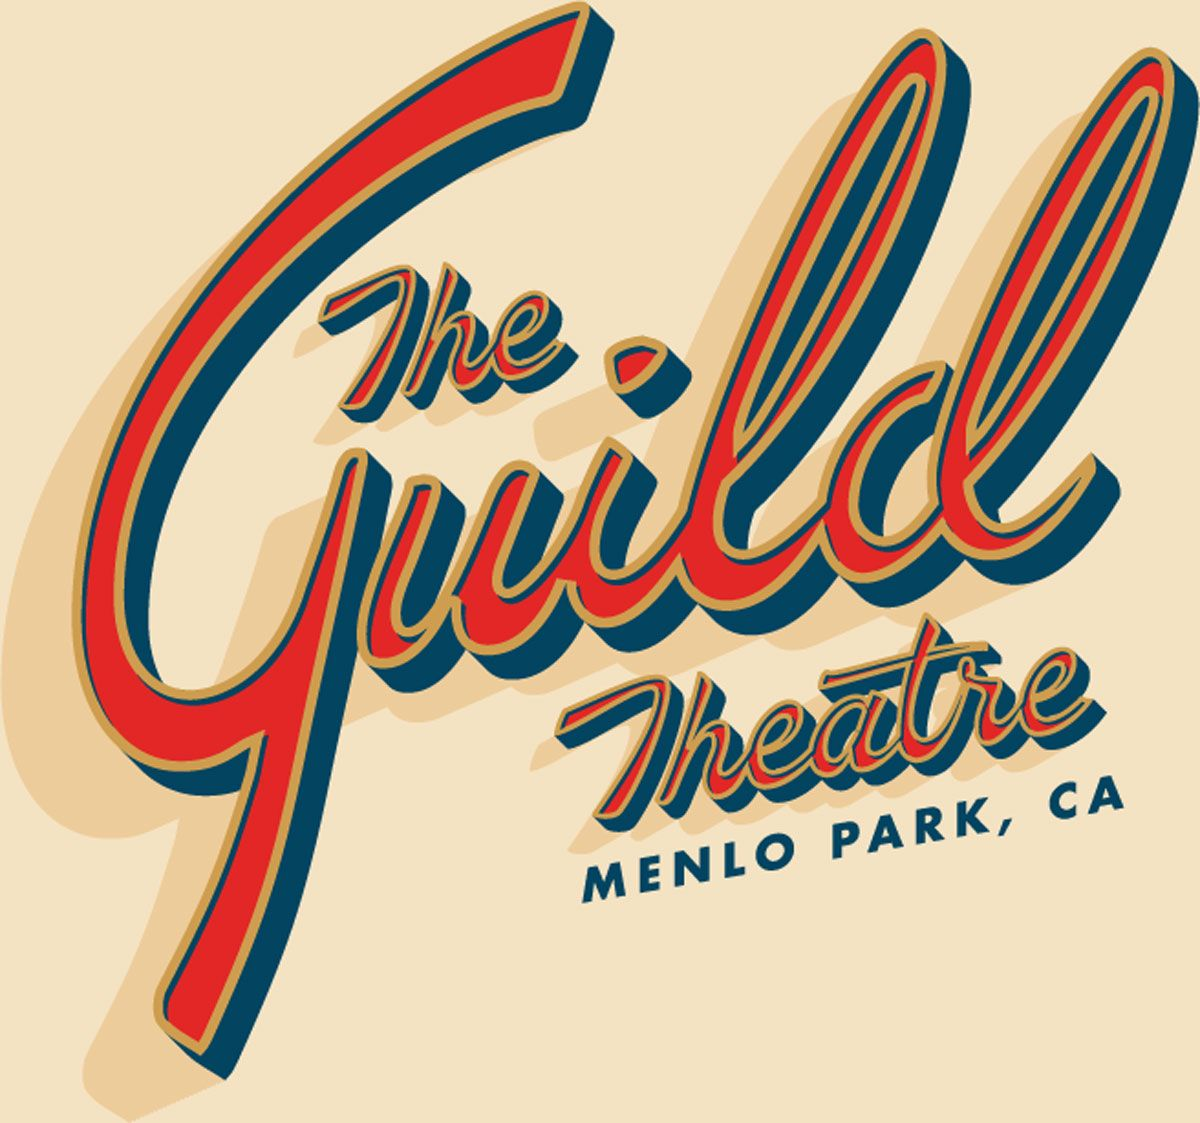 The Guild Theatre